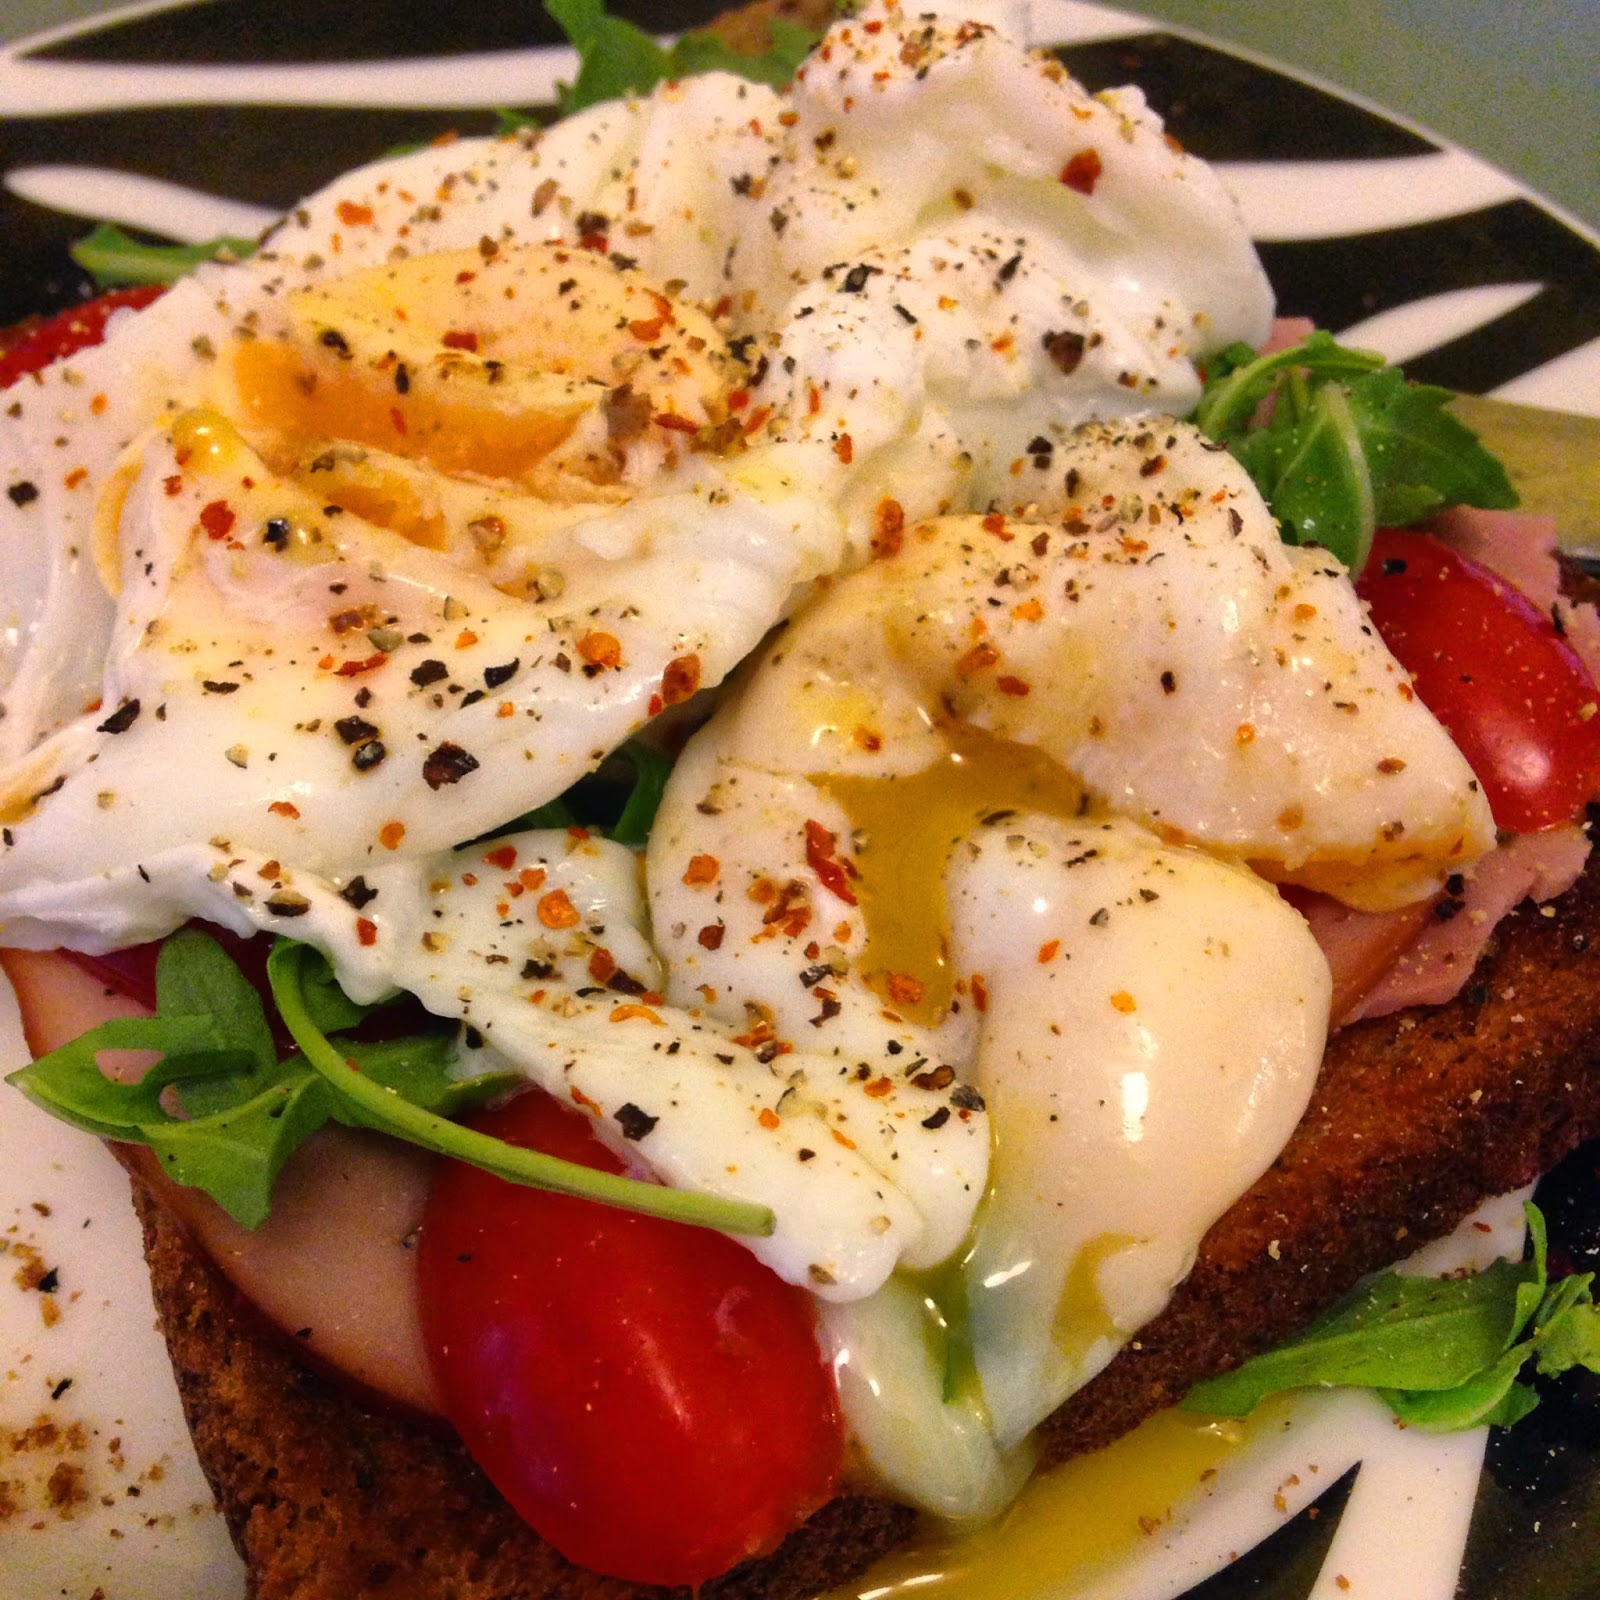 Poached eggs - healthy clean breakfast ideas and recipes